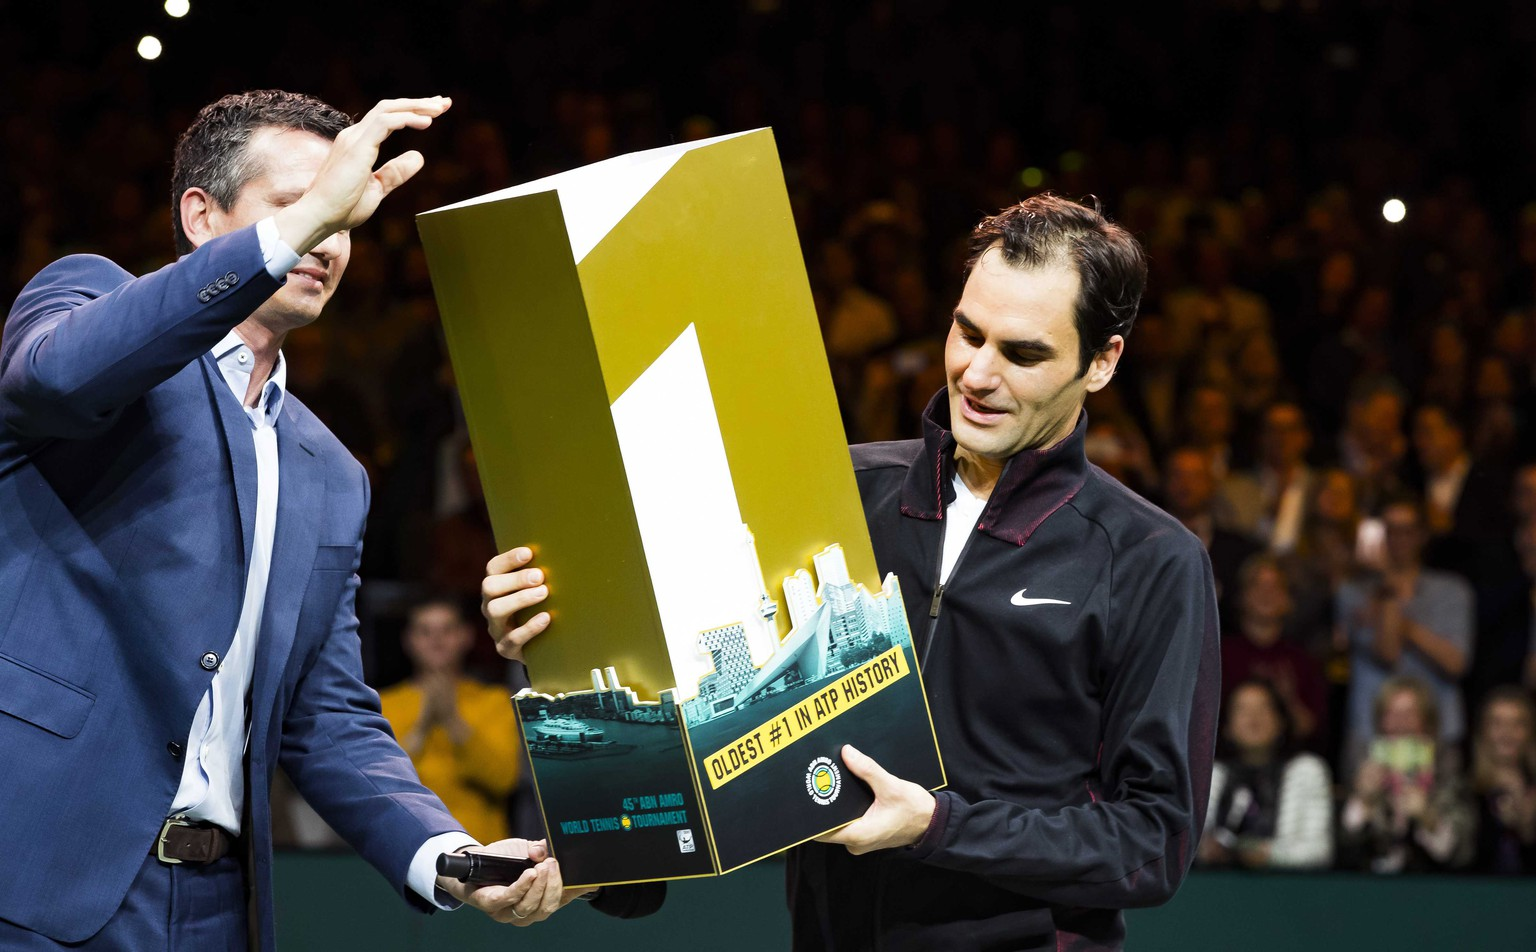 epa06533811  Roger Federer of Switzerland receives a trophy for getting the highest ranking again at the ATP after winning from  Robin Haase of the Netherlands in their quarter final match of the ABN AMRO World Tennis Tournament in Rotterdam, Netherlands, 16 February 2018.  EPA/KOEN SUYK